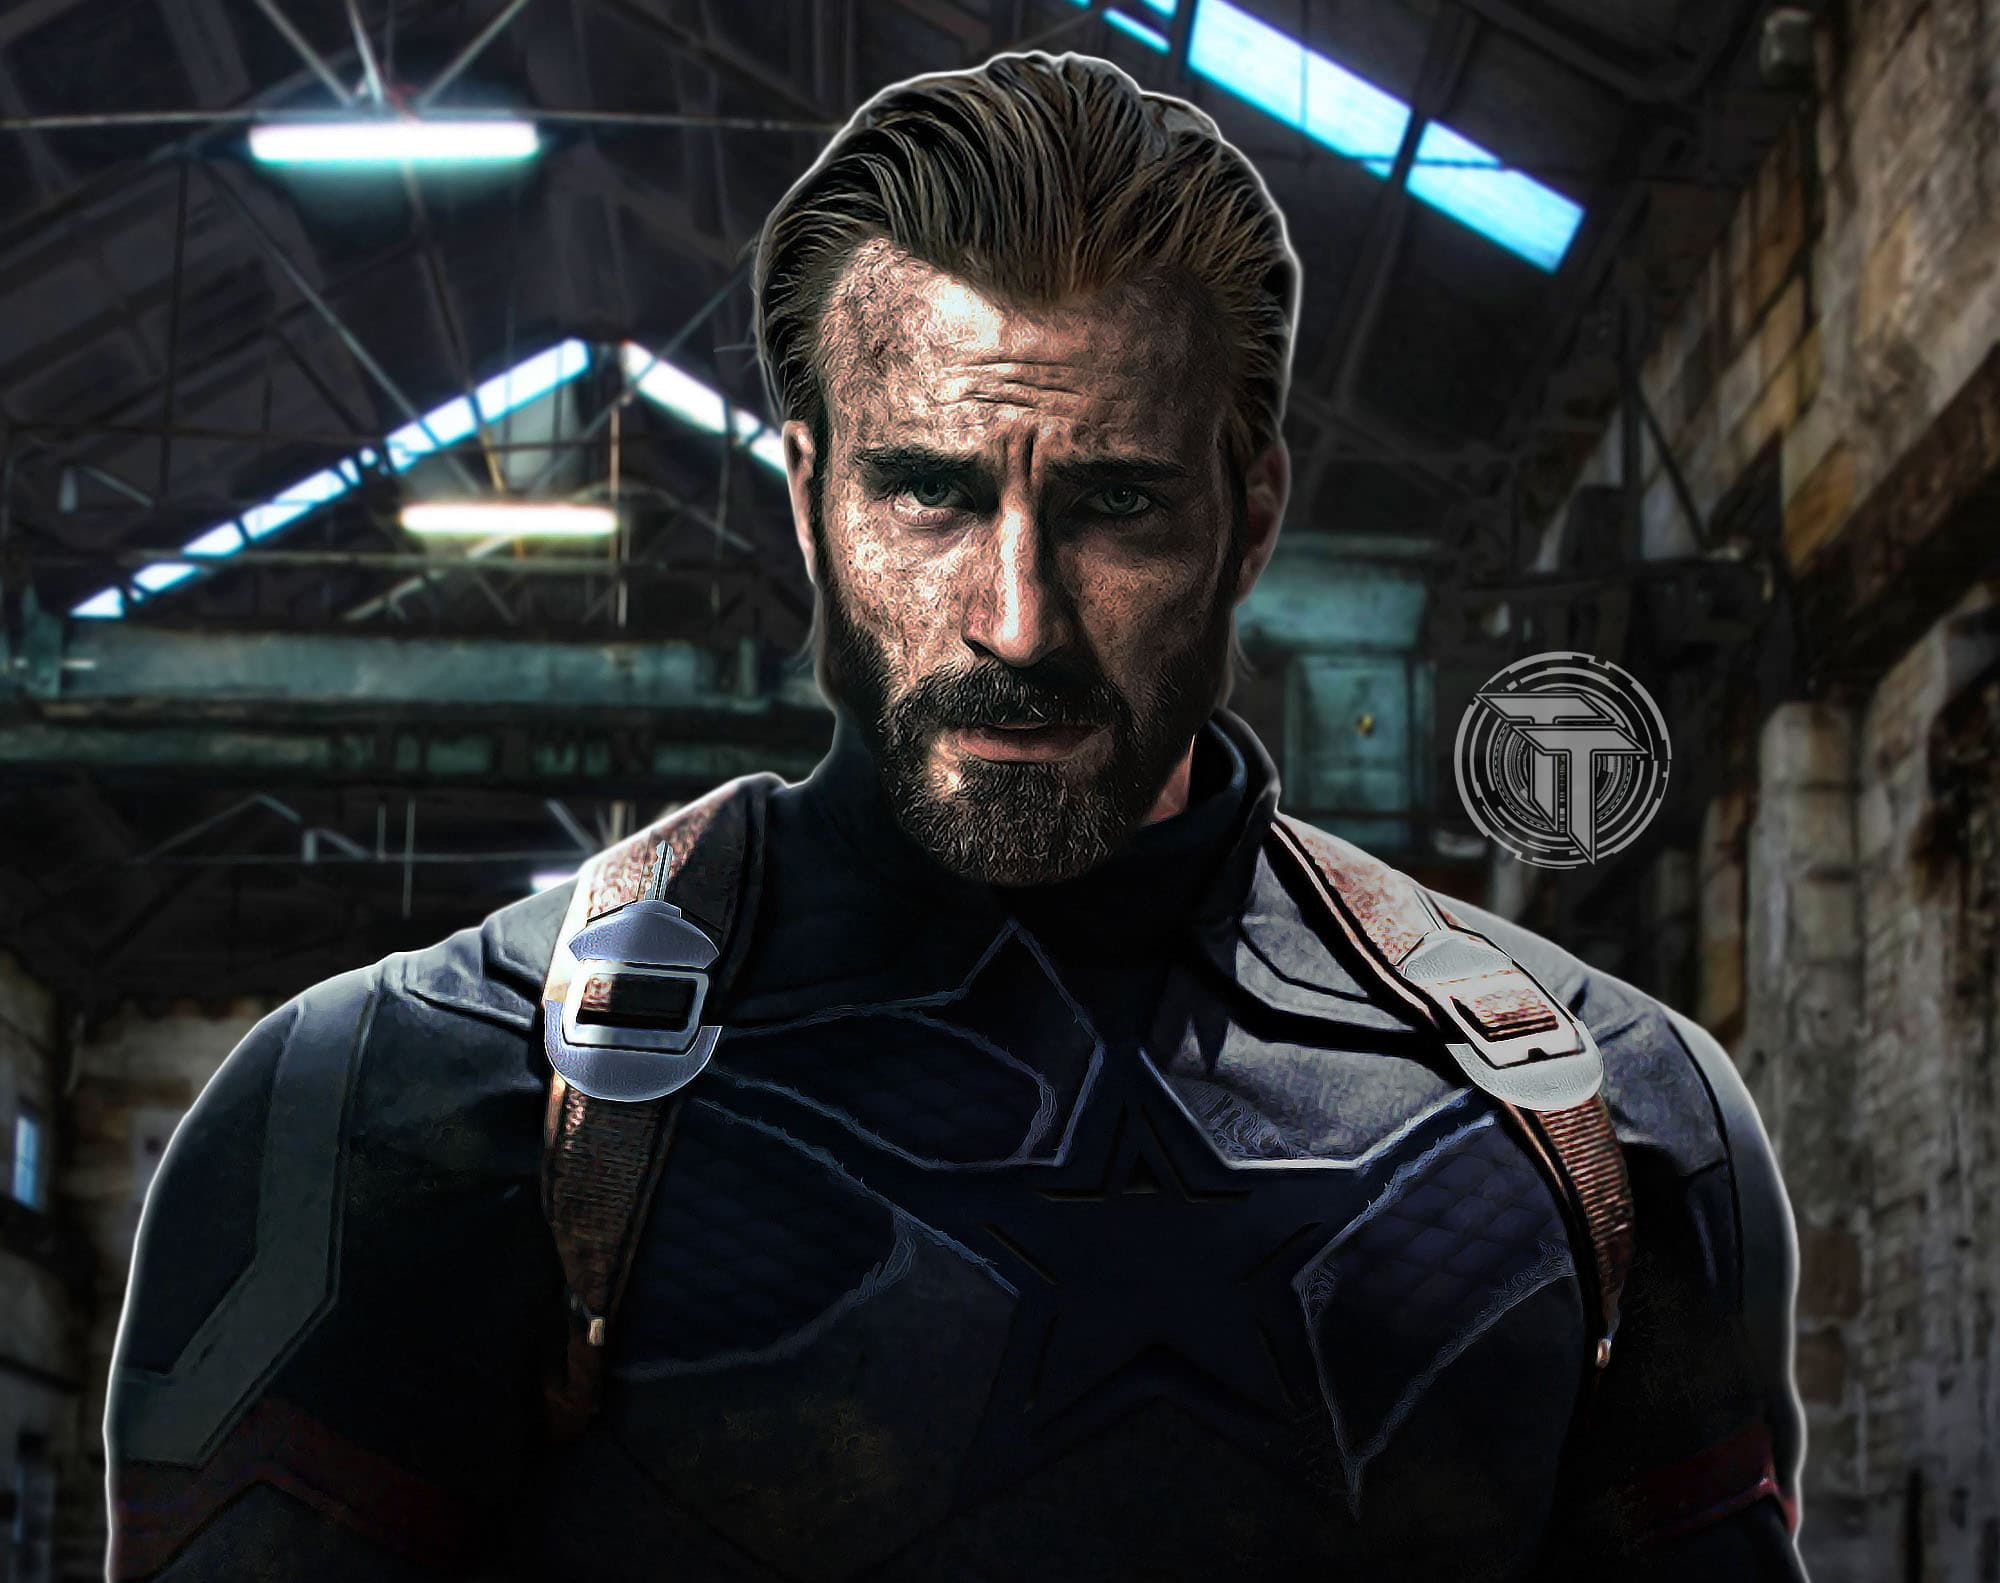 captain america beard infinity war photo - 1